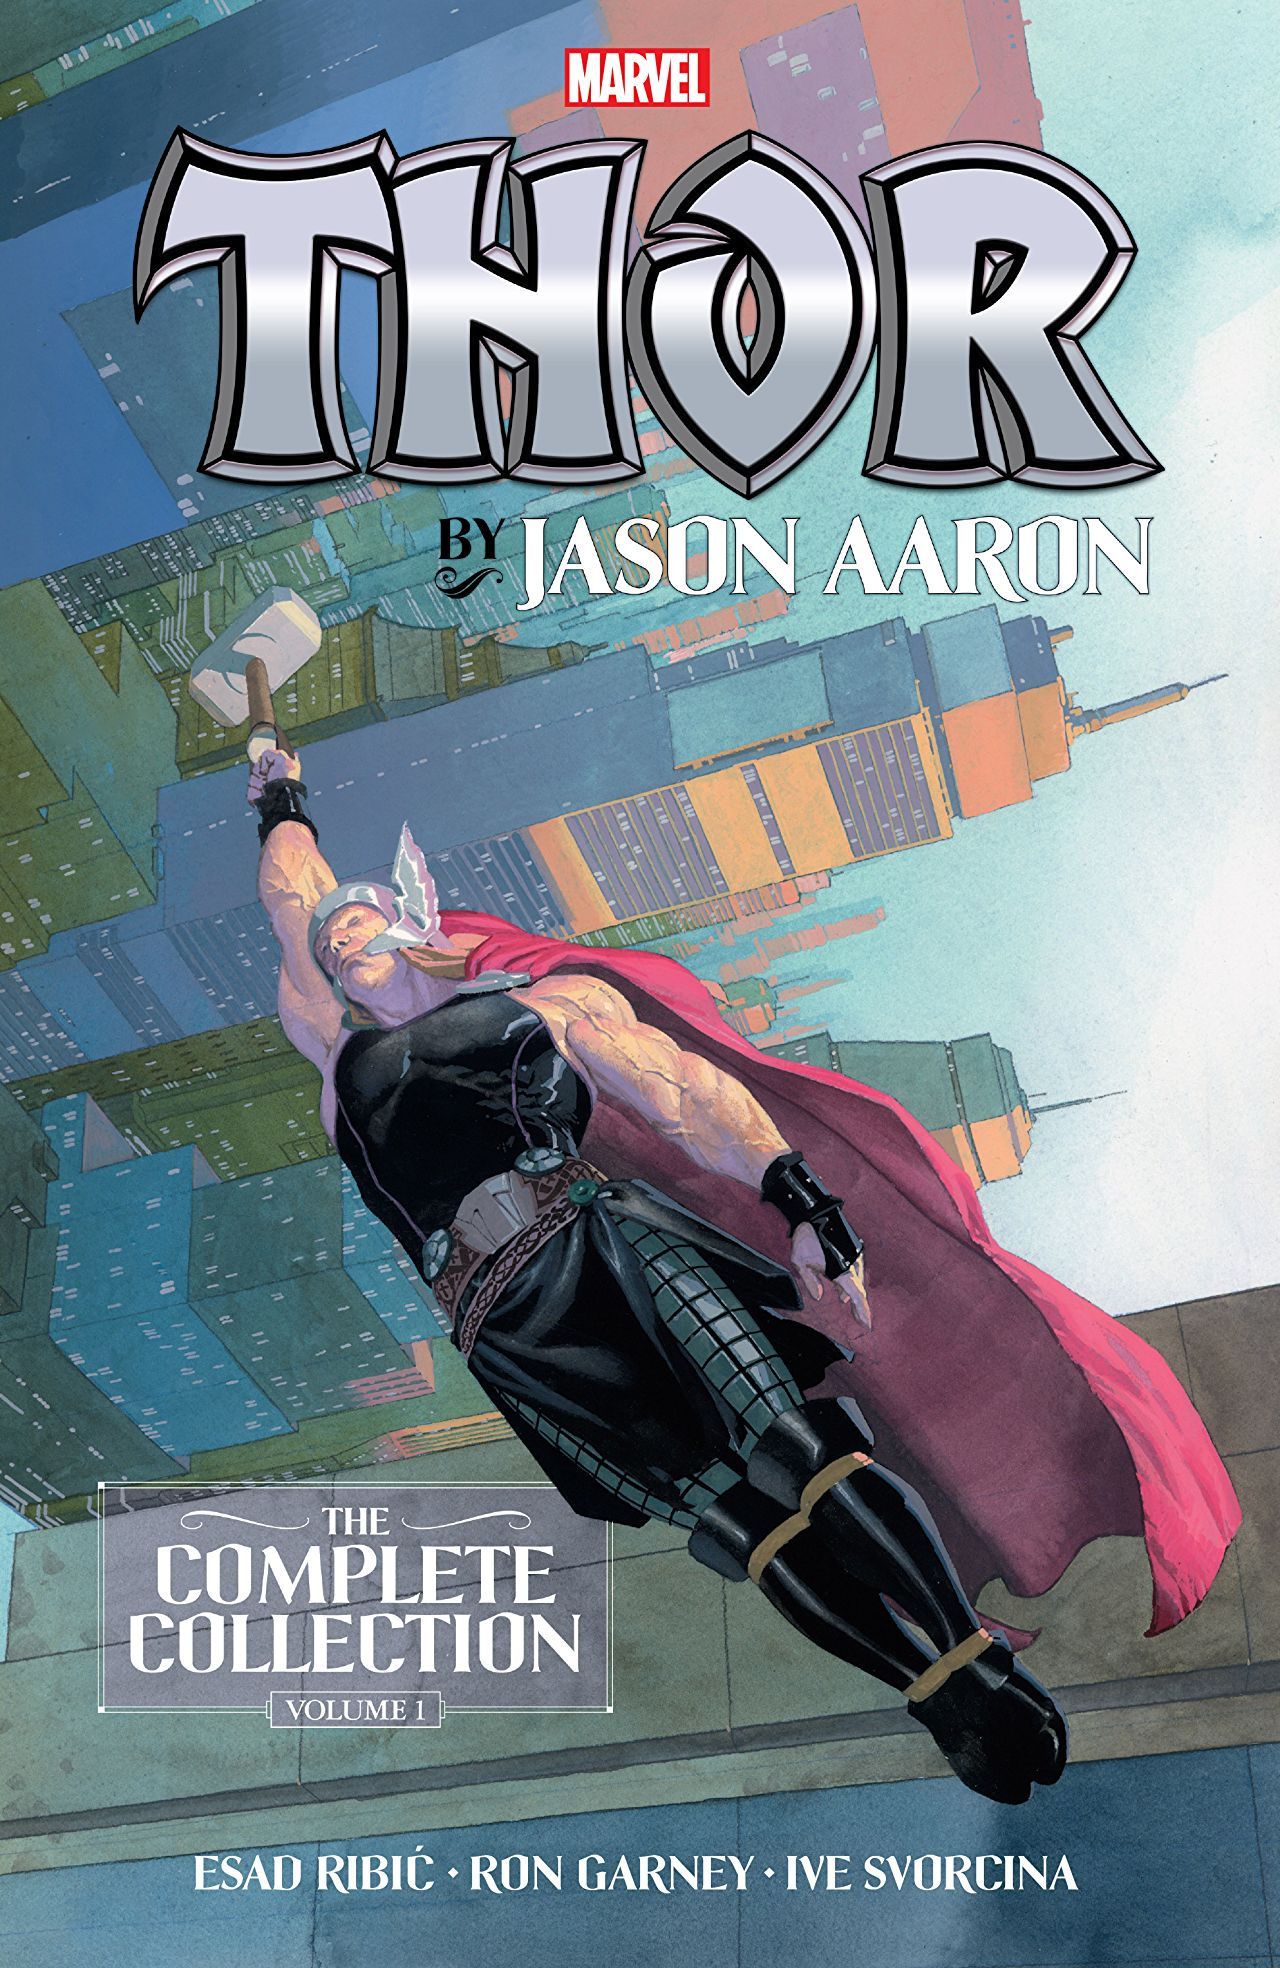 'Thor by Jason Aaron: The Complete Collection' Vol. 1 review